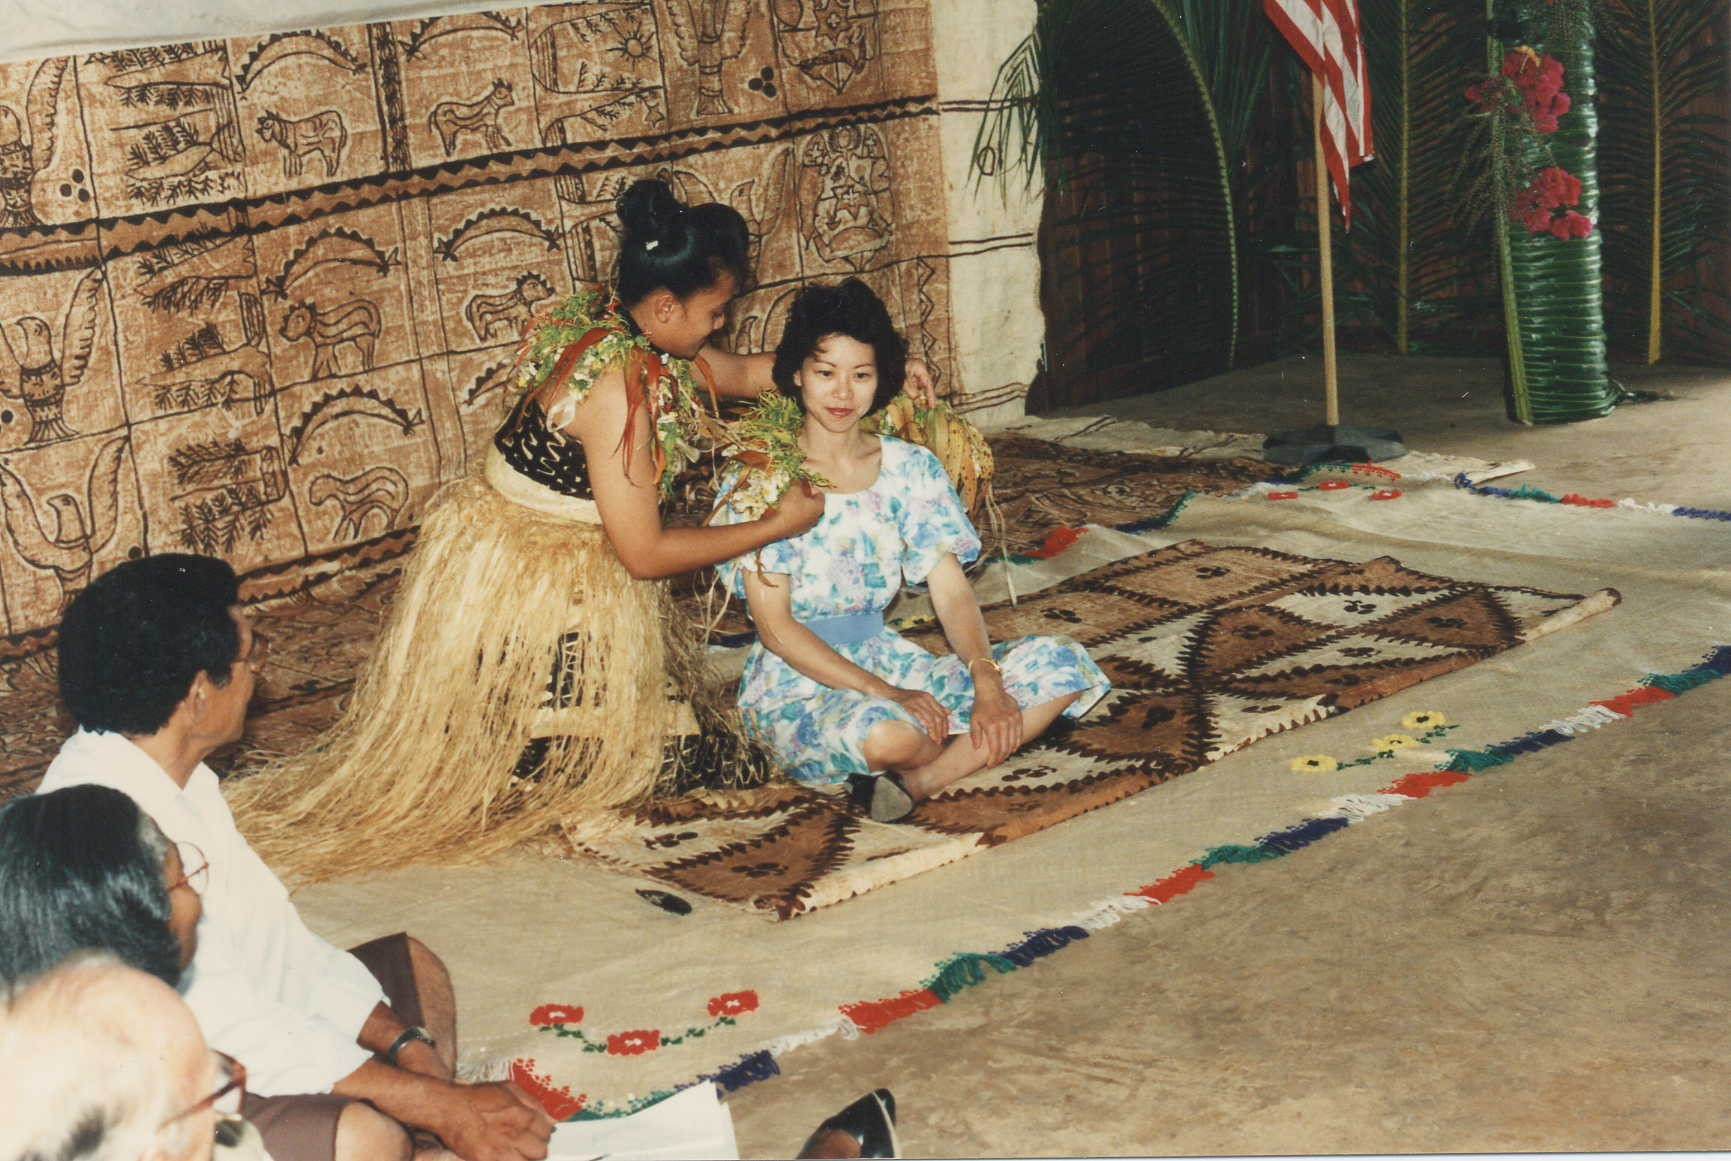 Tongans honoring Peace Corps Director Elaine Chao during a welcome ceremony.